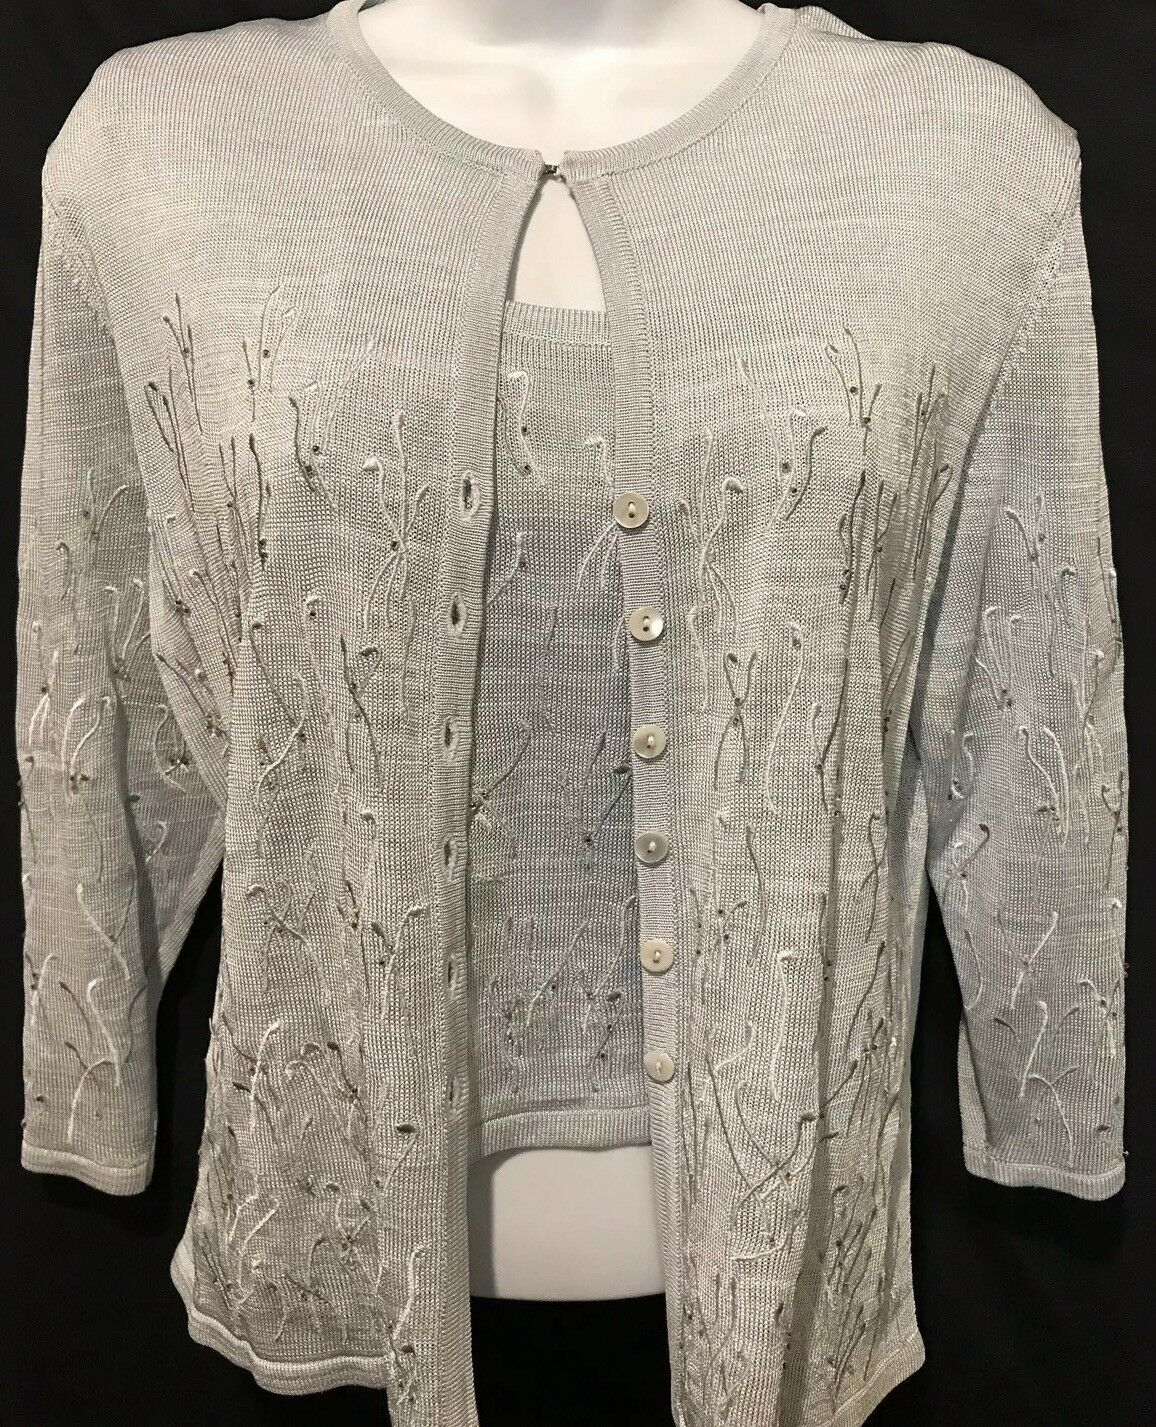 CLASSIQUE ENTIER Sweater Nordstrom Twinset bluee Petite Beaded Embroidered Sz M